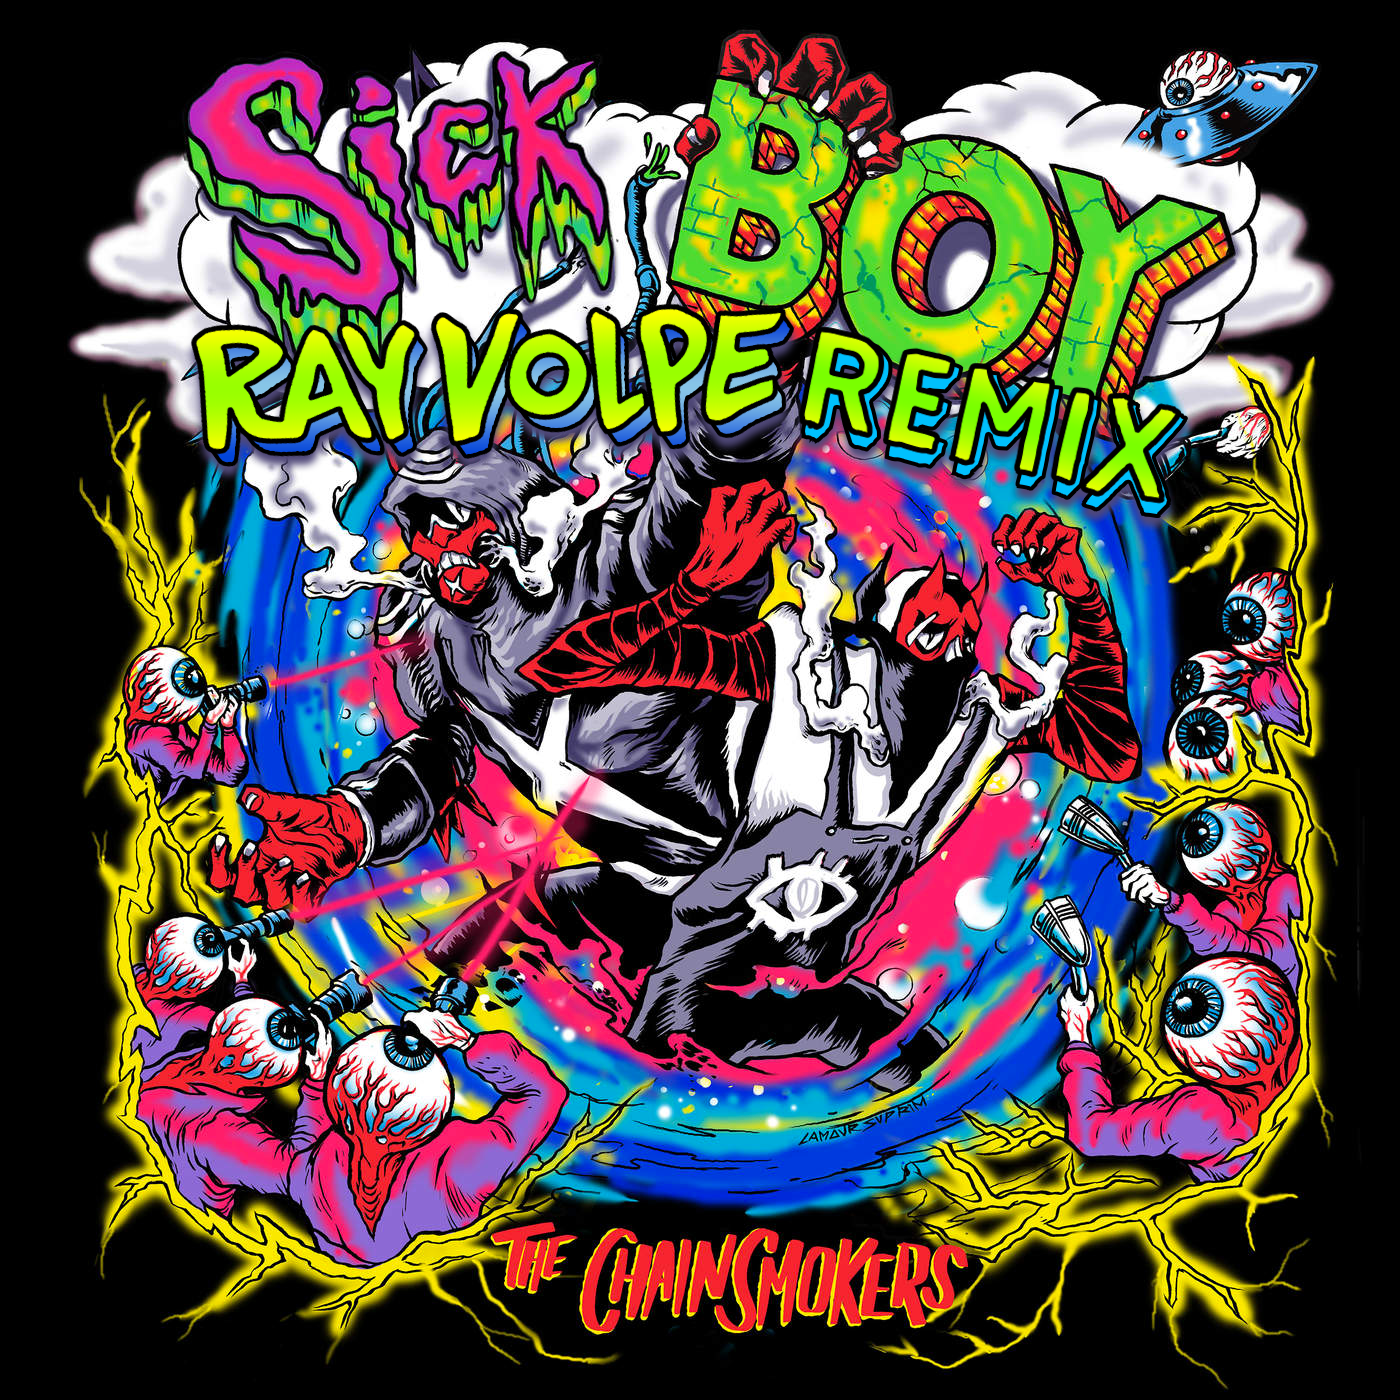 The Chainsmokers Sick Boy Ray Volpe Remix